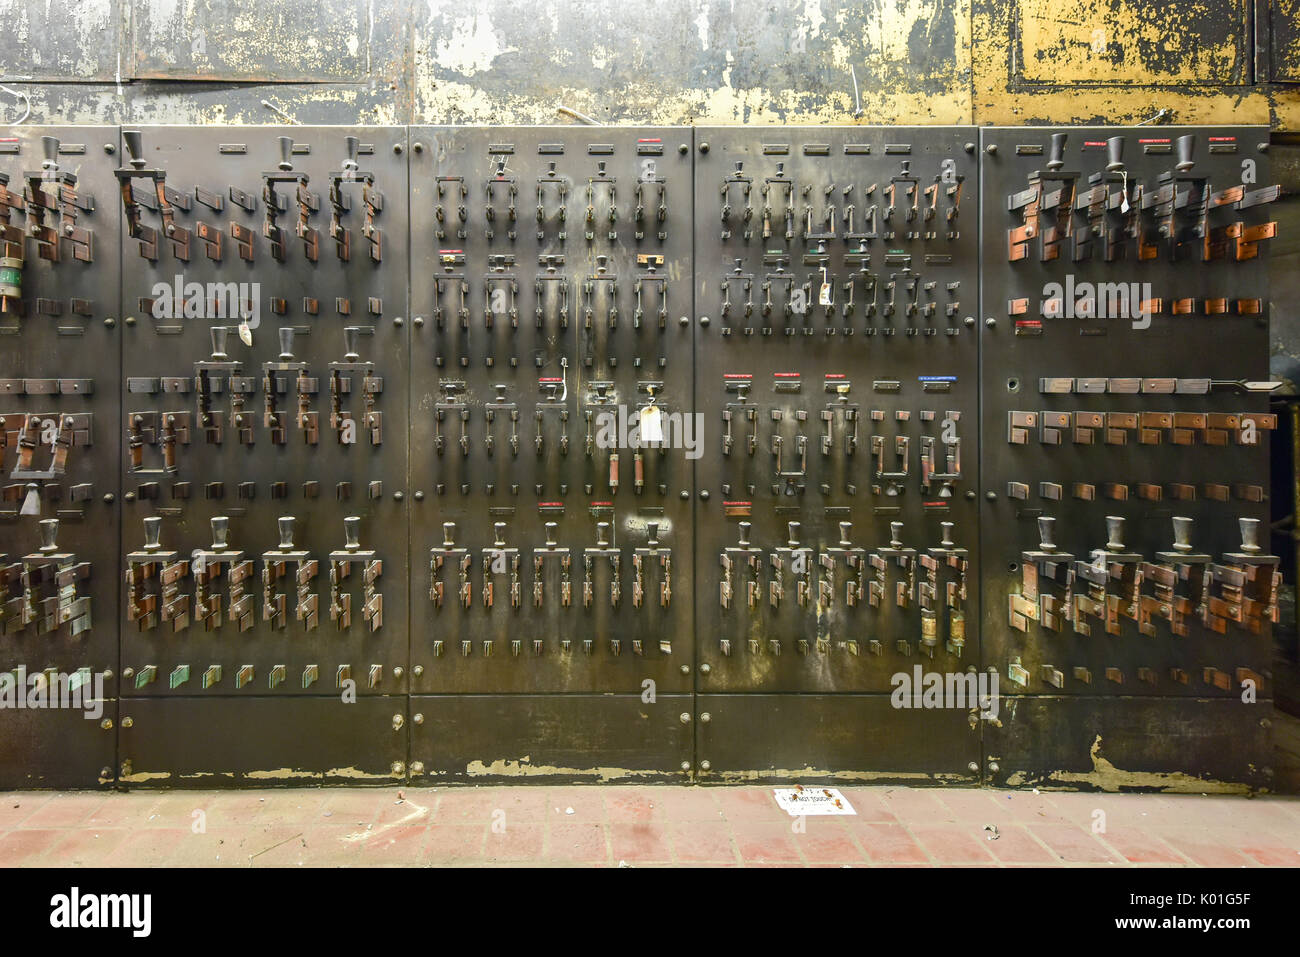 Circuit Breaker Fuse Box Handle Schematics Wiring Diagrams Home Electrical Cover Old Fuses Stock Photos